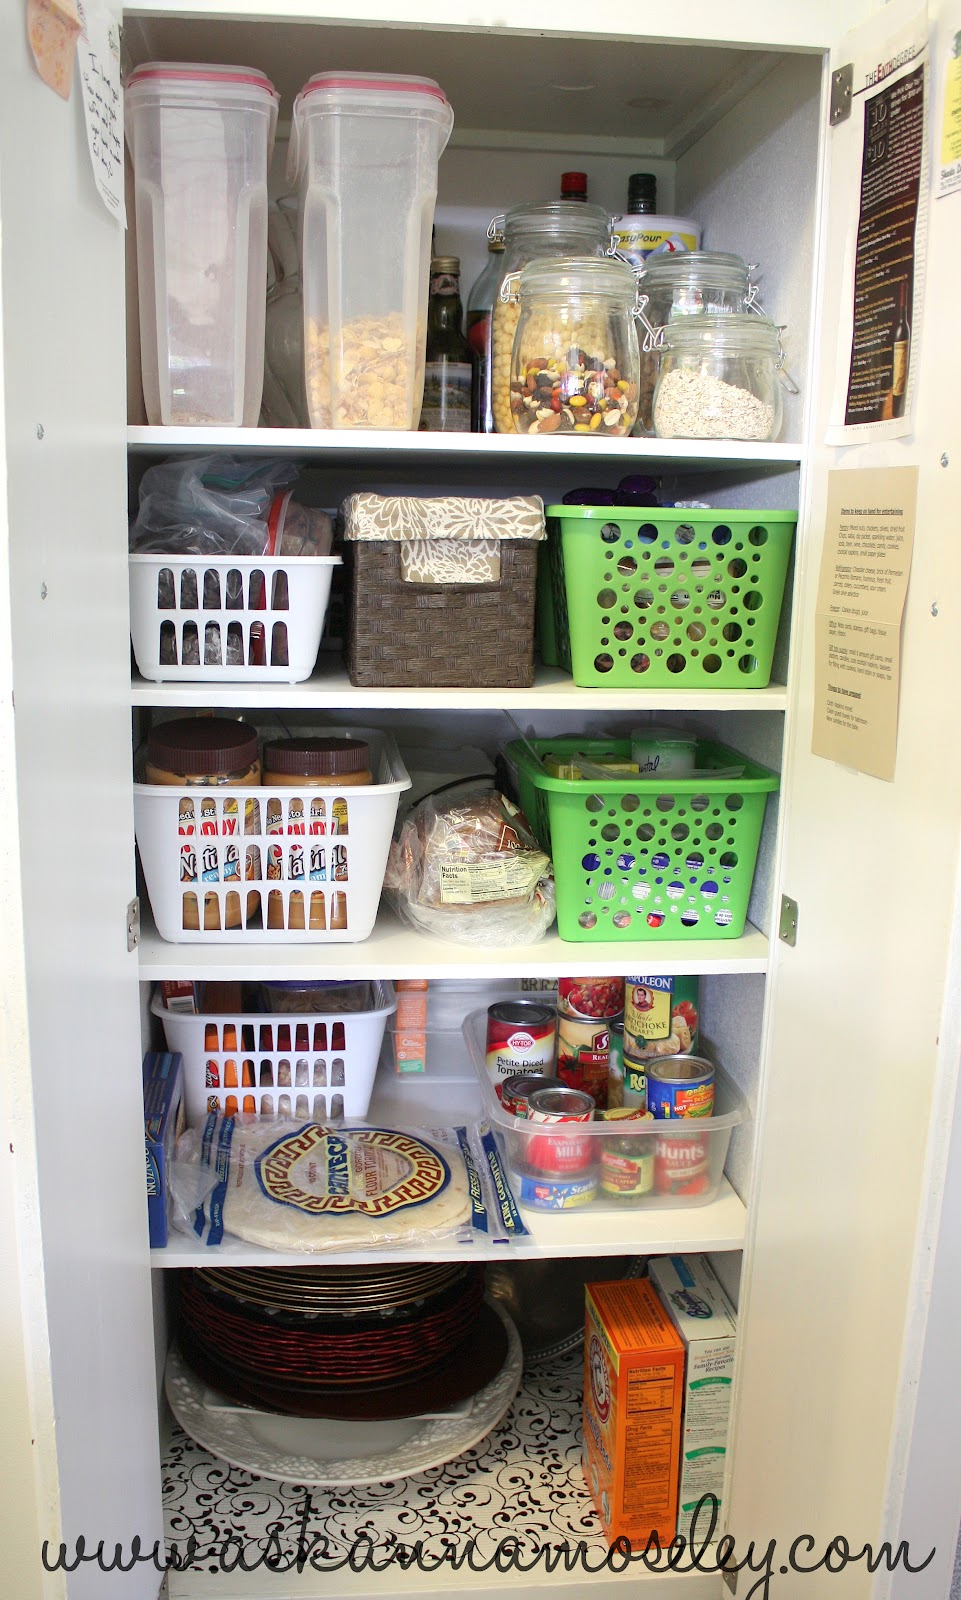 ideas for organizing living room furniture, ideas for organizing toys, ideas for organizing refrigerator, ideas for organizing closets, ideas for home organization, ideas for small kitchen, ideas for organizing tools, on ideas for organizing deep kitchen cabinets